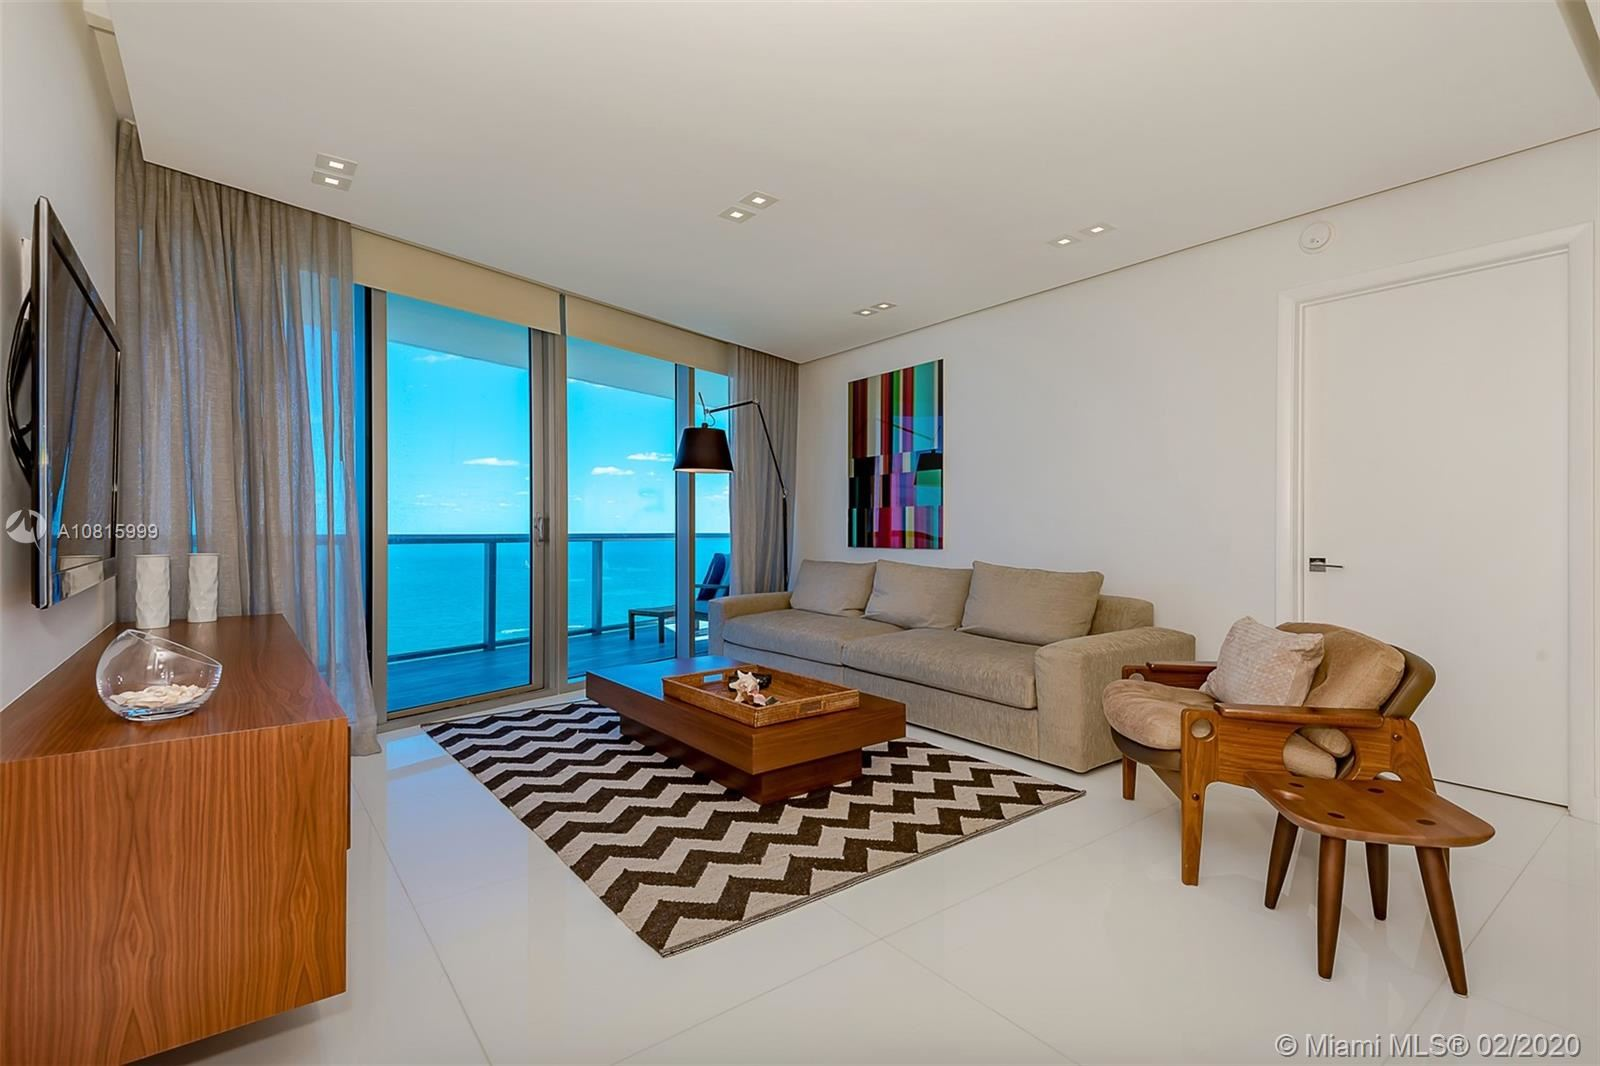 17001 Collins Ave #2502, Sunny Isles, FL 33160 - #: A10815999